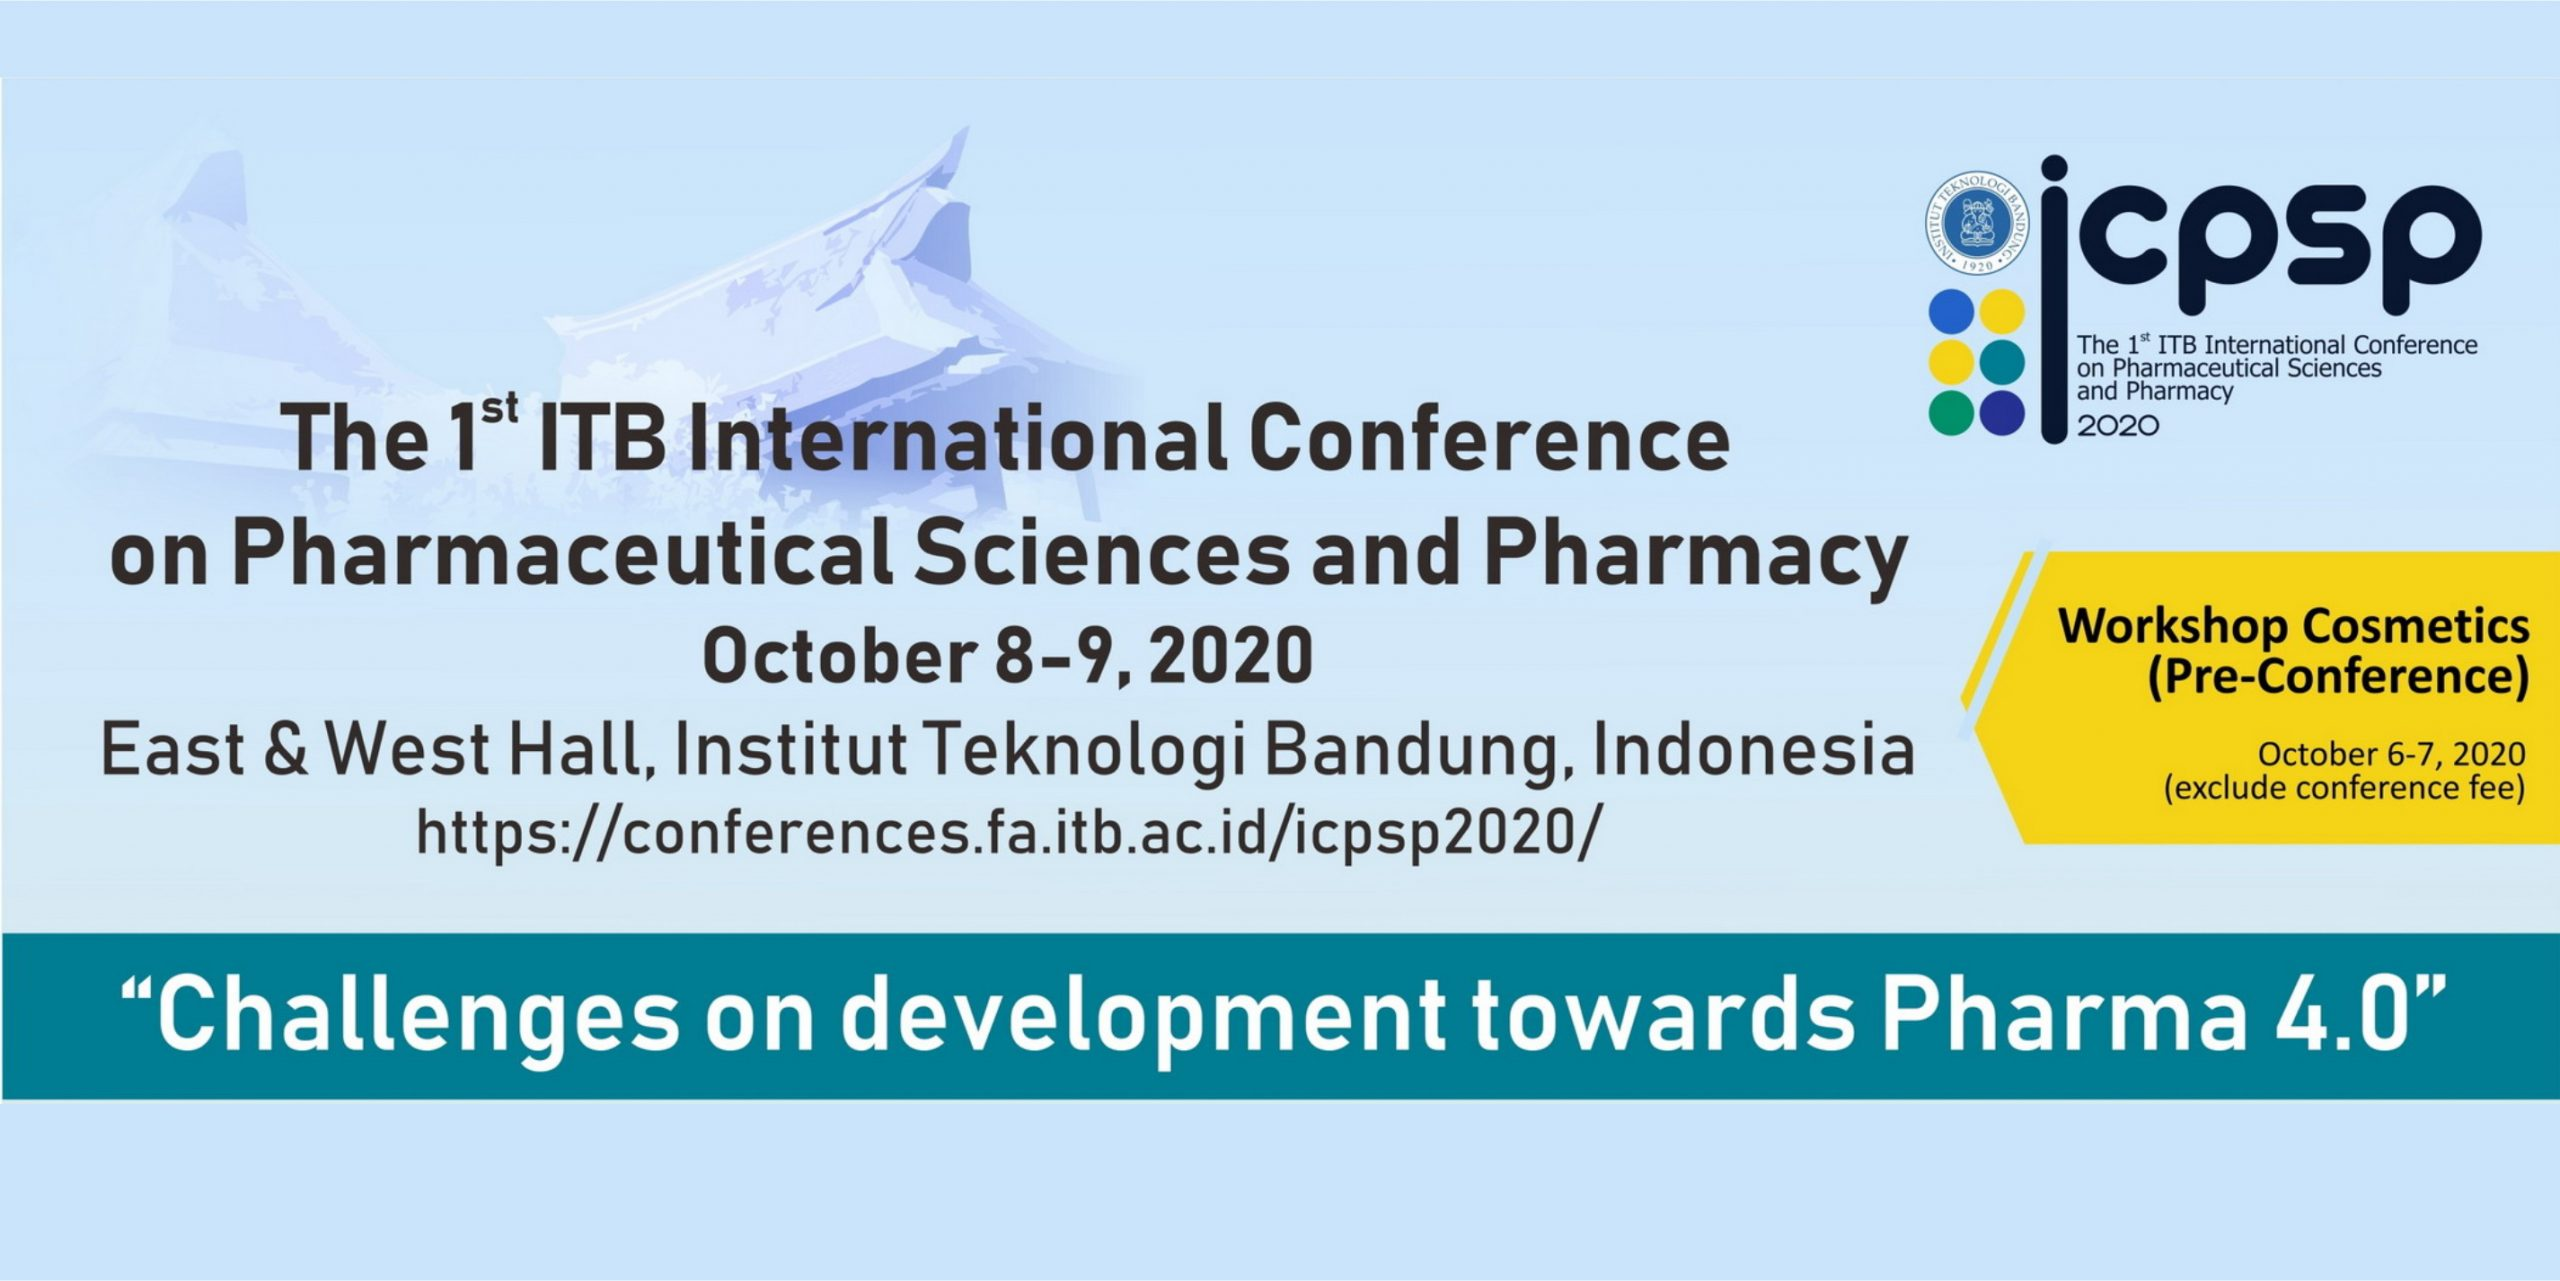 International Conference on Pharmaceutical Sciences and Pharmacy (ICPSP 2020)